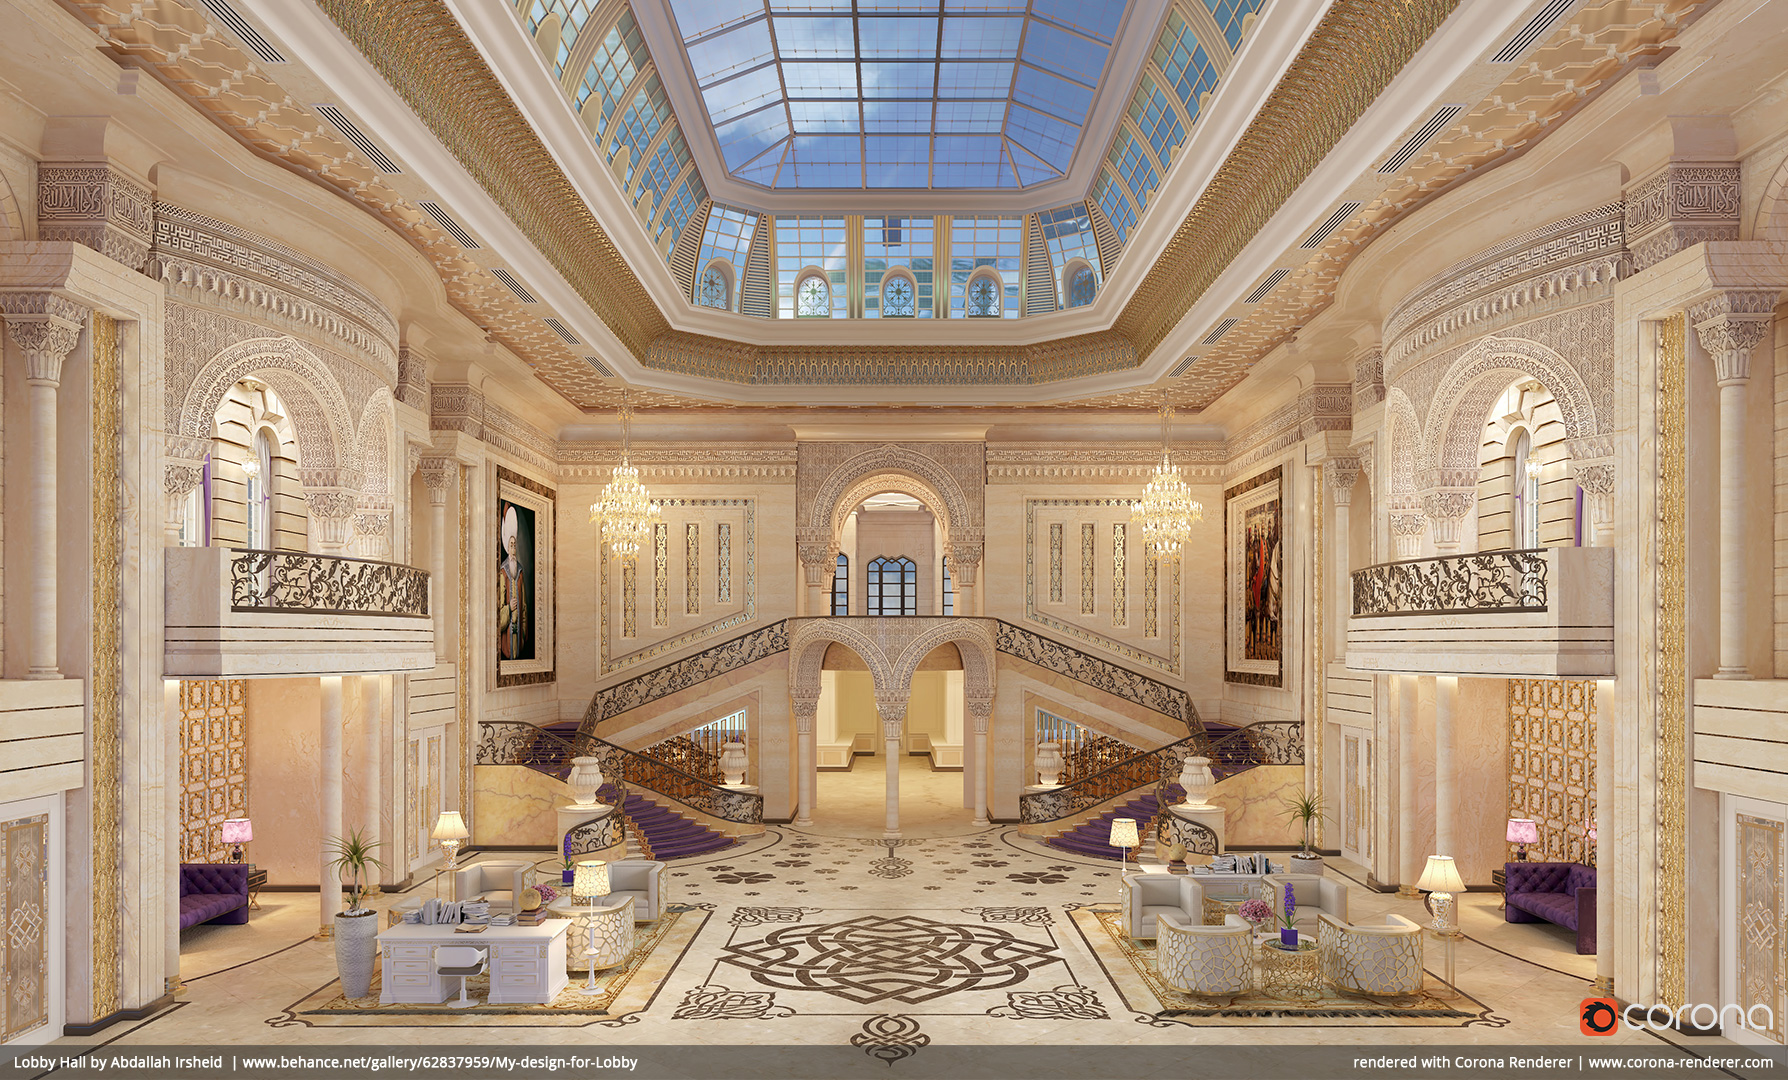 Lobby Hall by Abdallah Irsheid